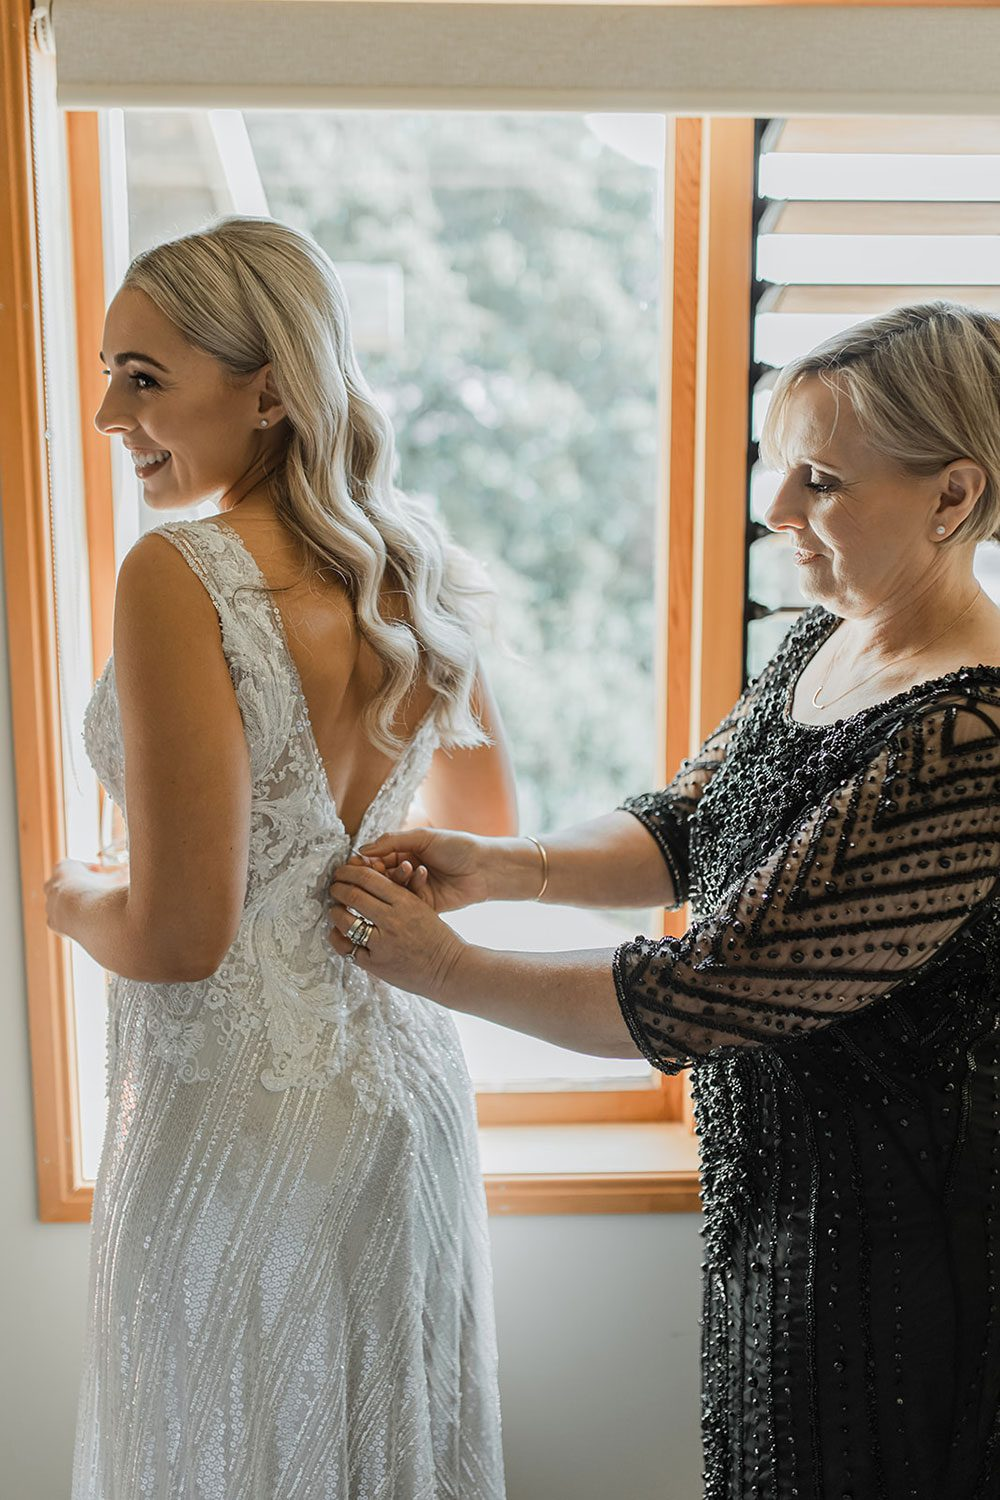 Bride wearing bespoke fitted V-neck gown in beaded lace with front split and sheer beaded overlay by VInka Bridal boutique- getting dressed